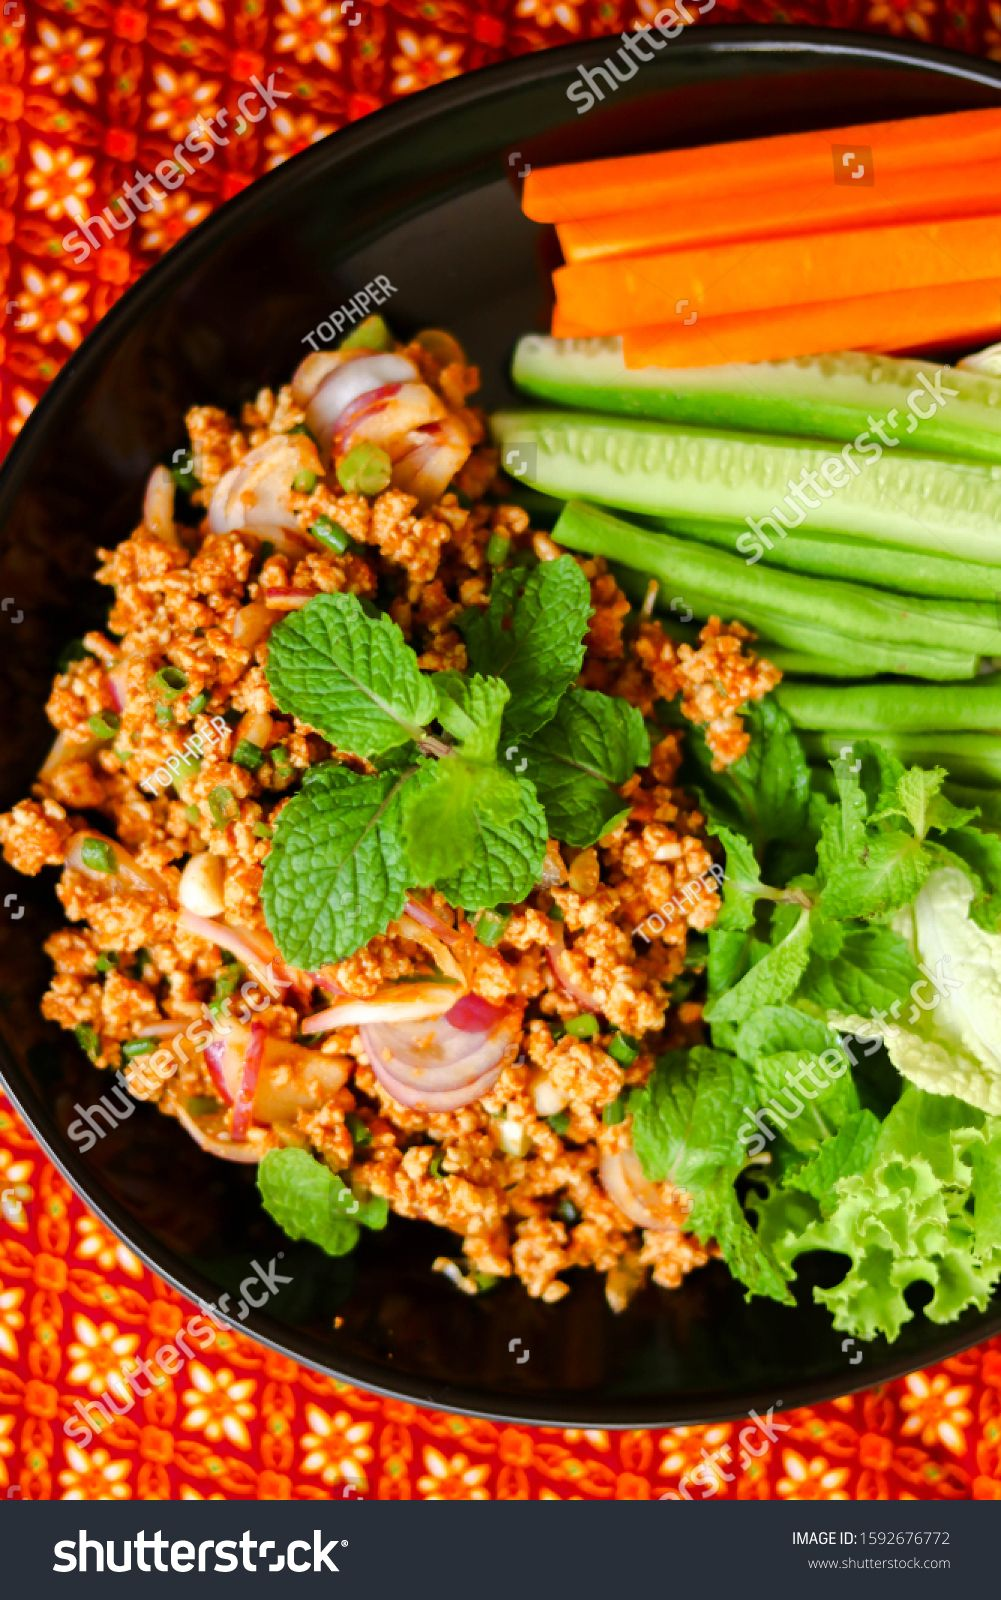 \nspicy minced meat salad marinated closeup juicy asian food home made vegetarian nutrition background lunch salad dinner green delicious fresh diet meal healthy vegetable food #Sponsored , #ad, #asian#juicy#food#vegetarian